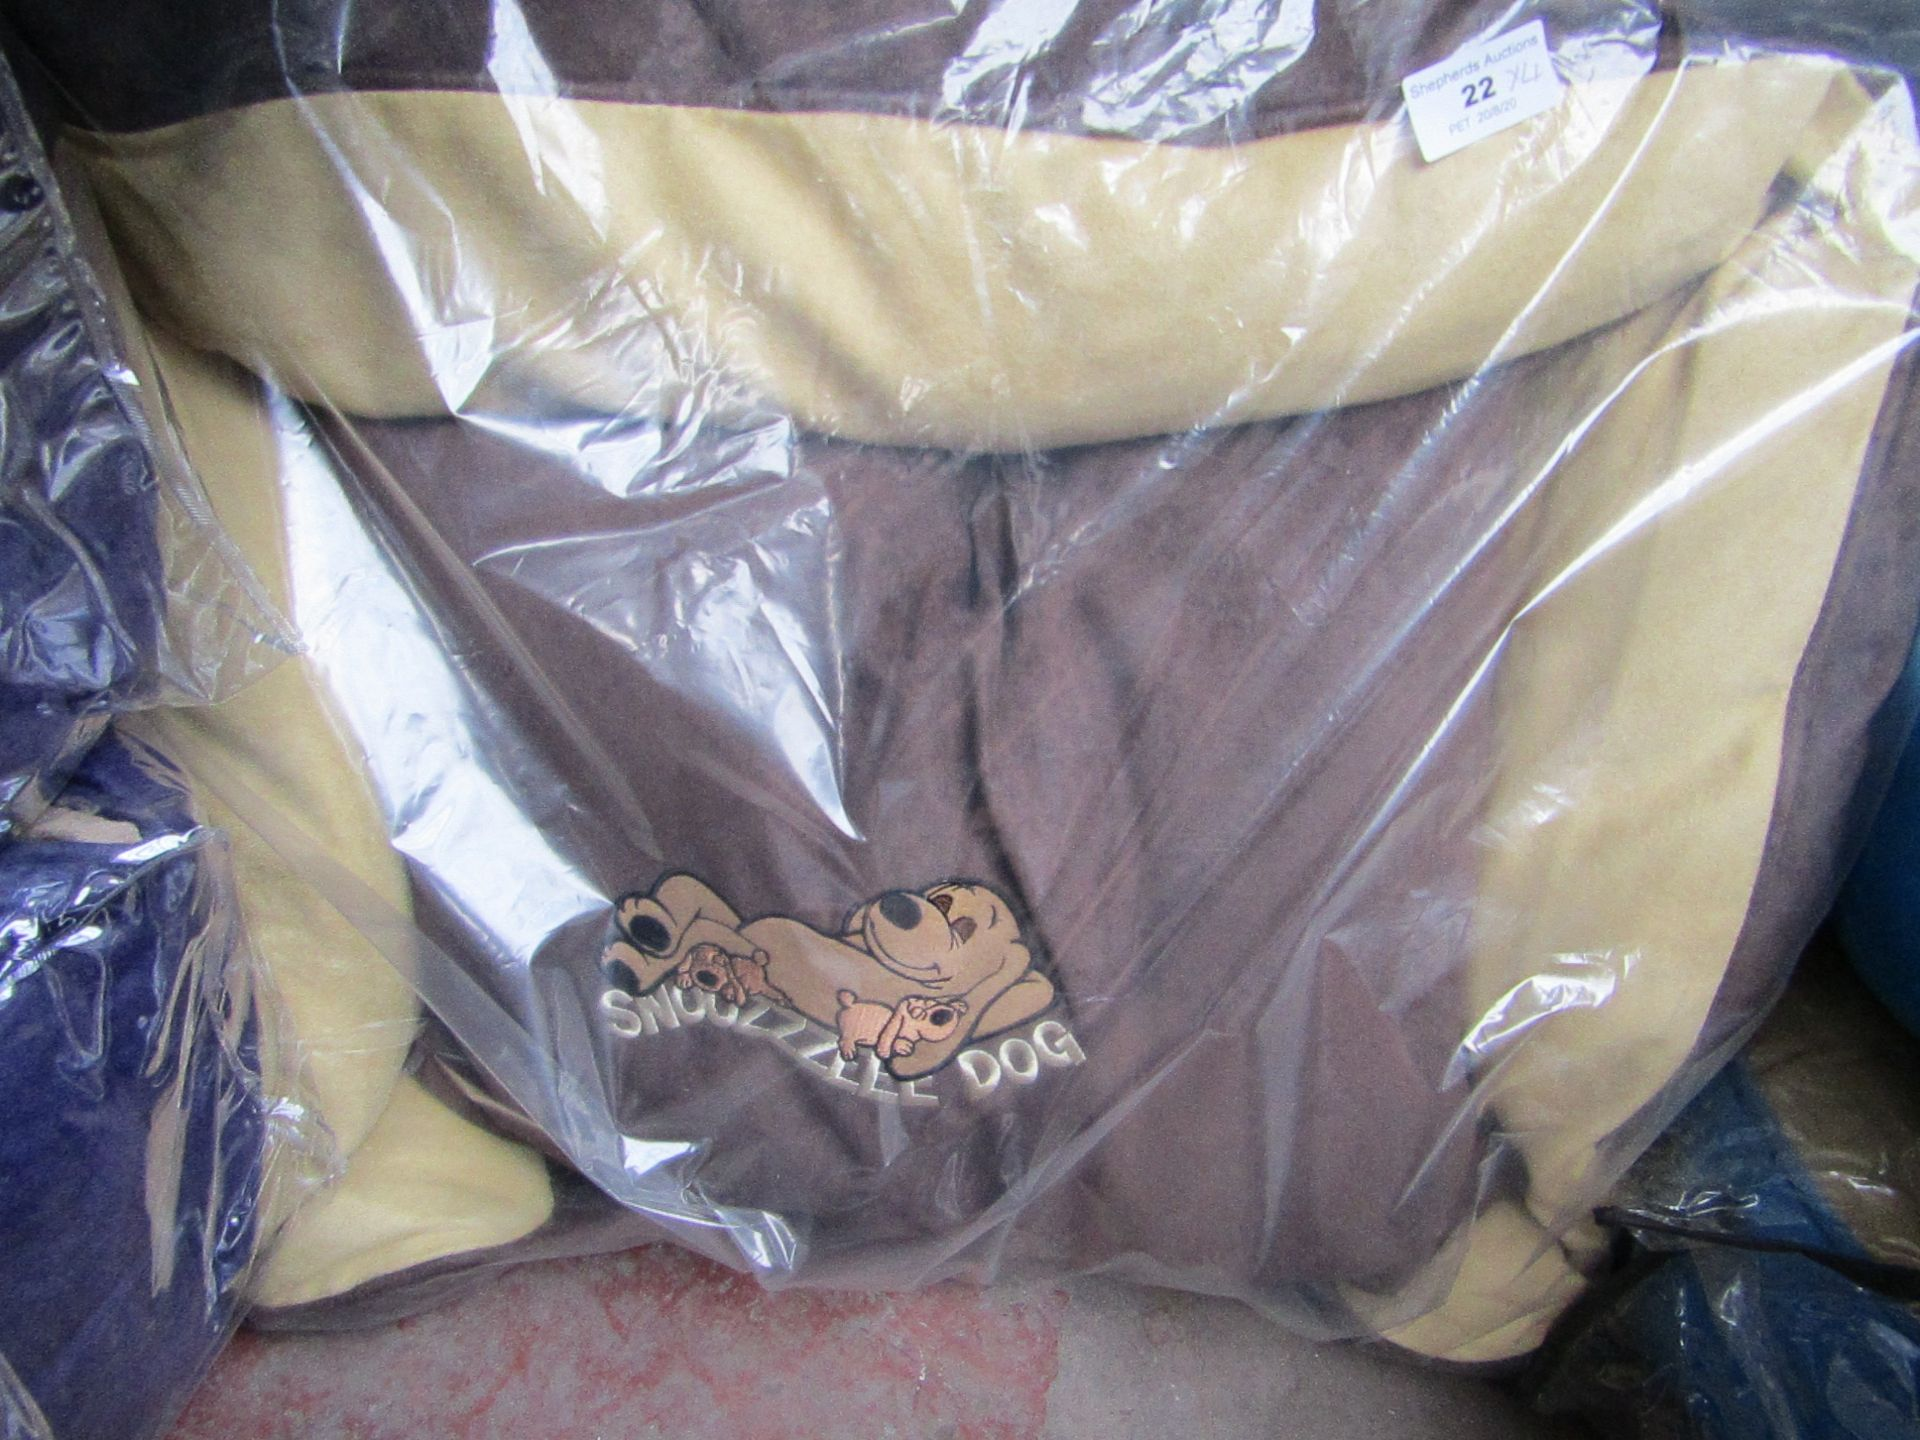 "4x Snoozzzeee Dog - Brown Sofa Dog Bed (23"") - All New & Packaged."